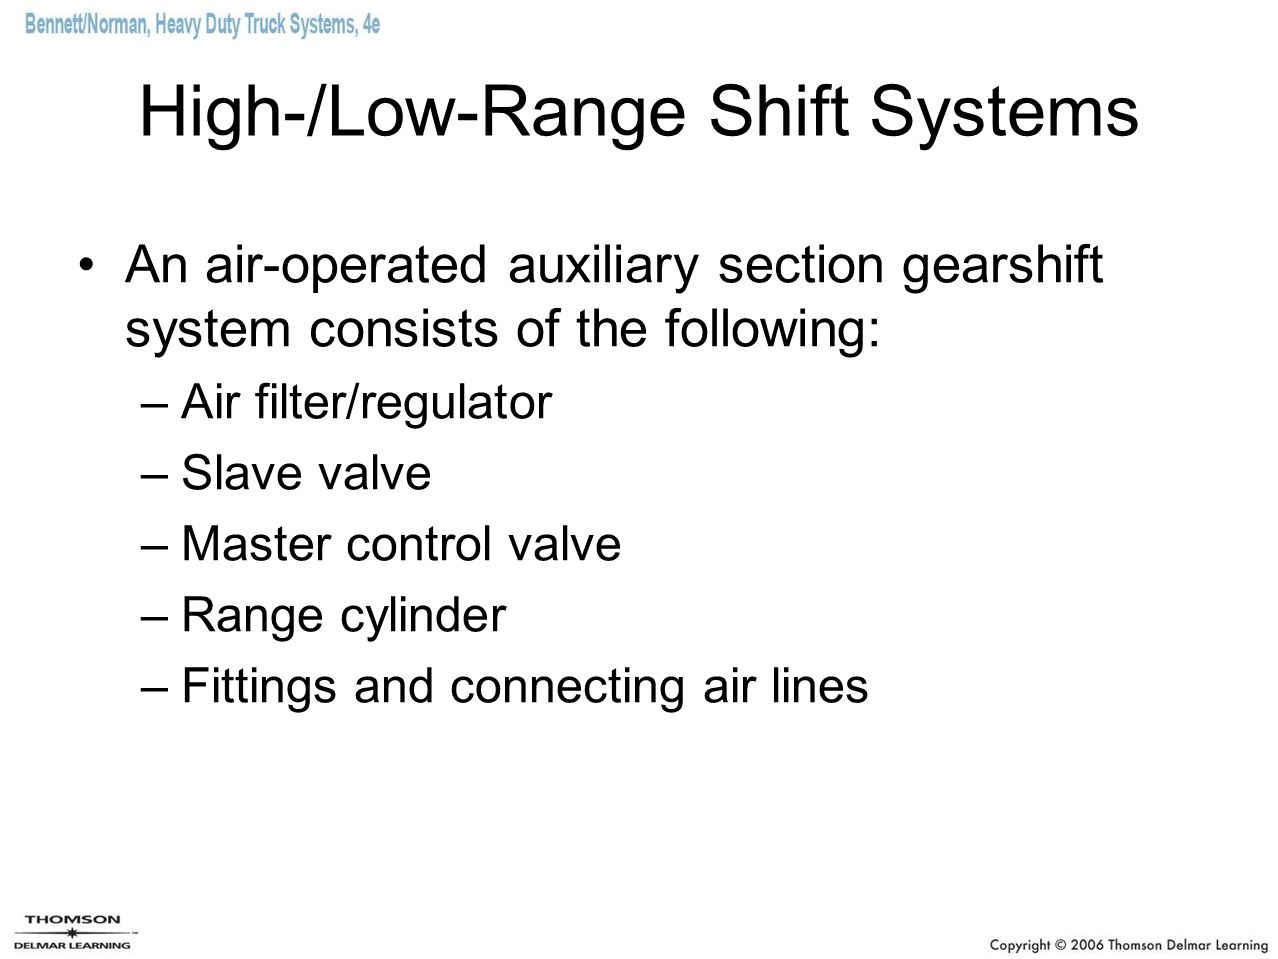 High-/Low-Range Shift Systems